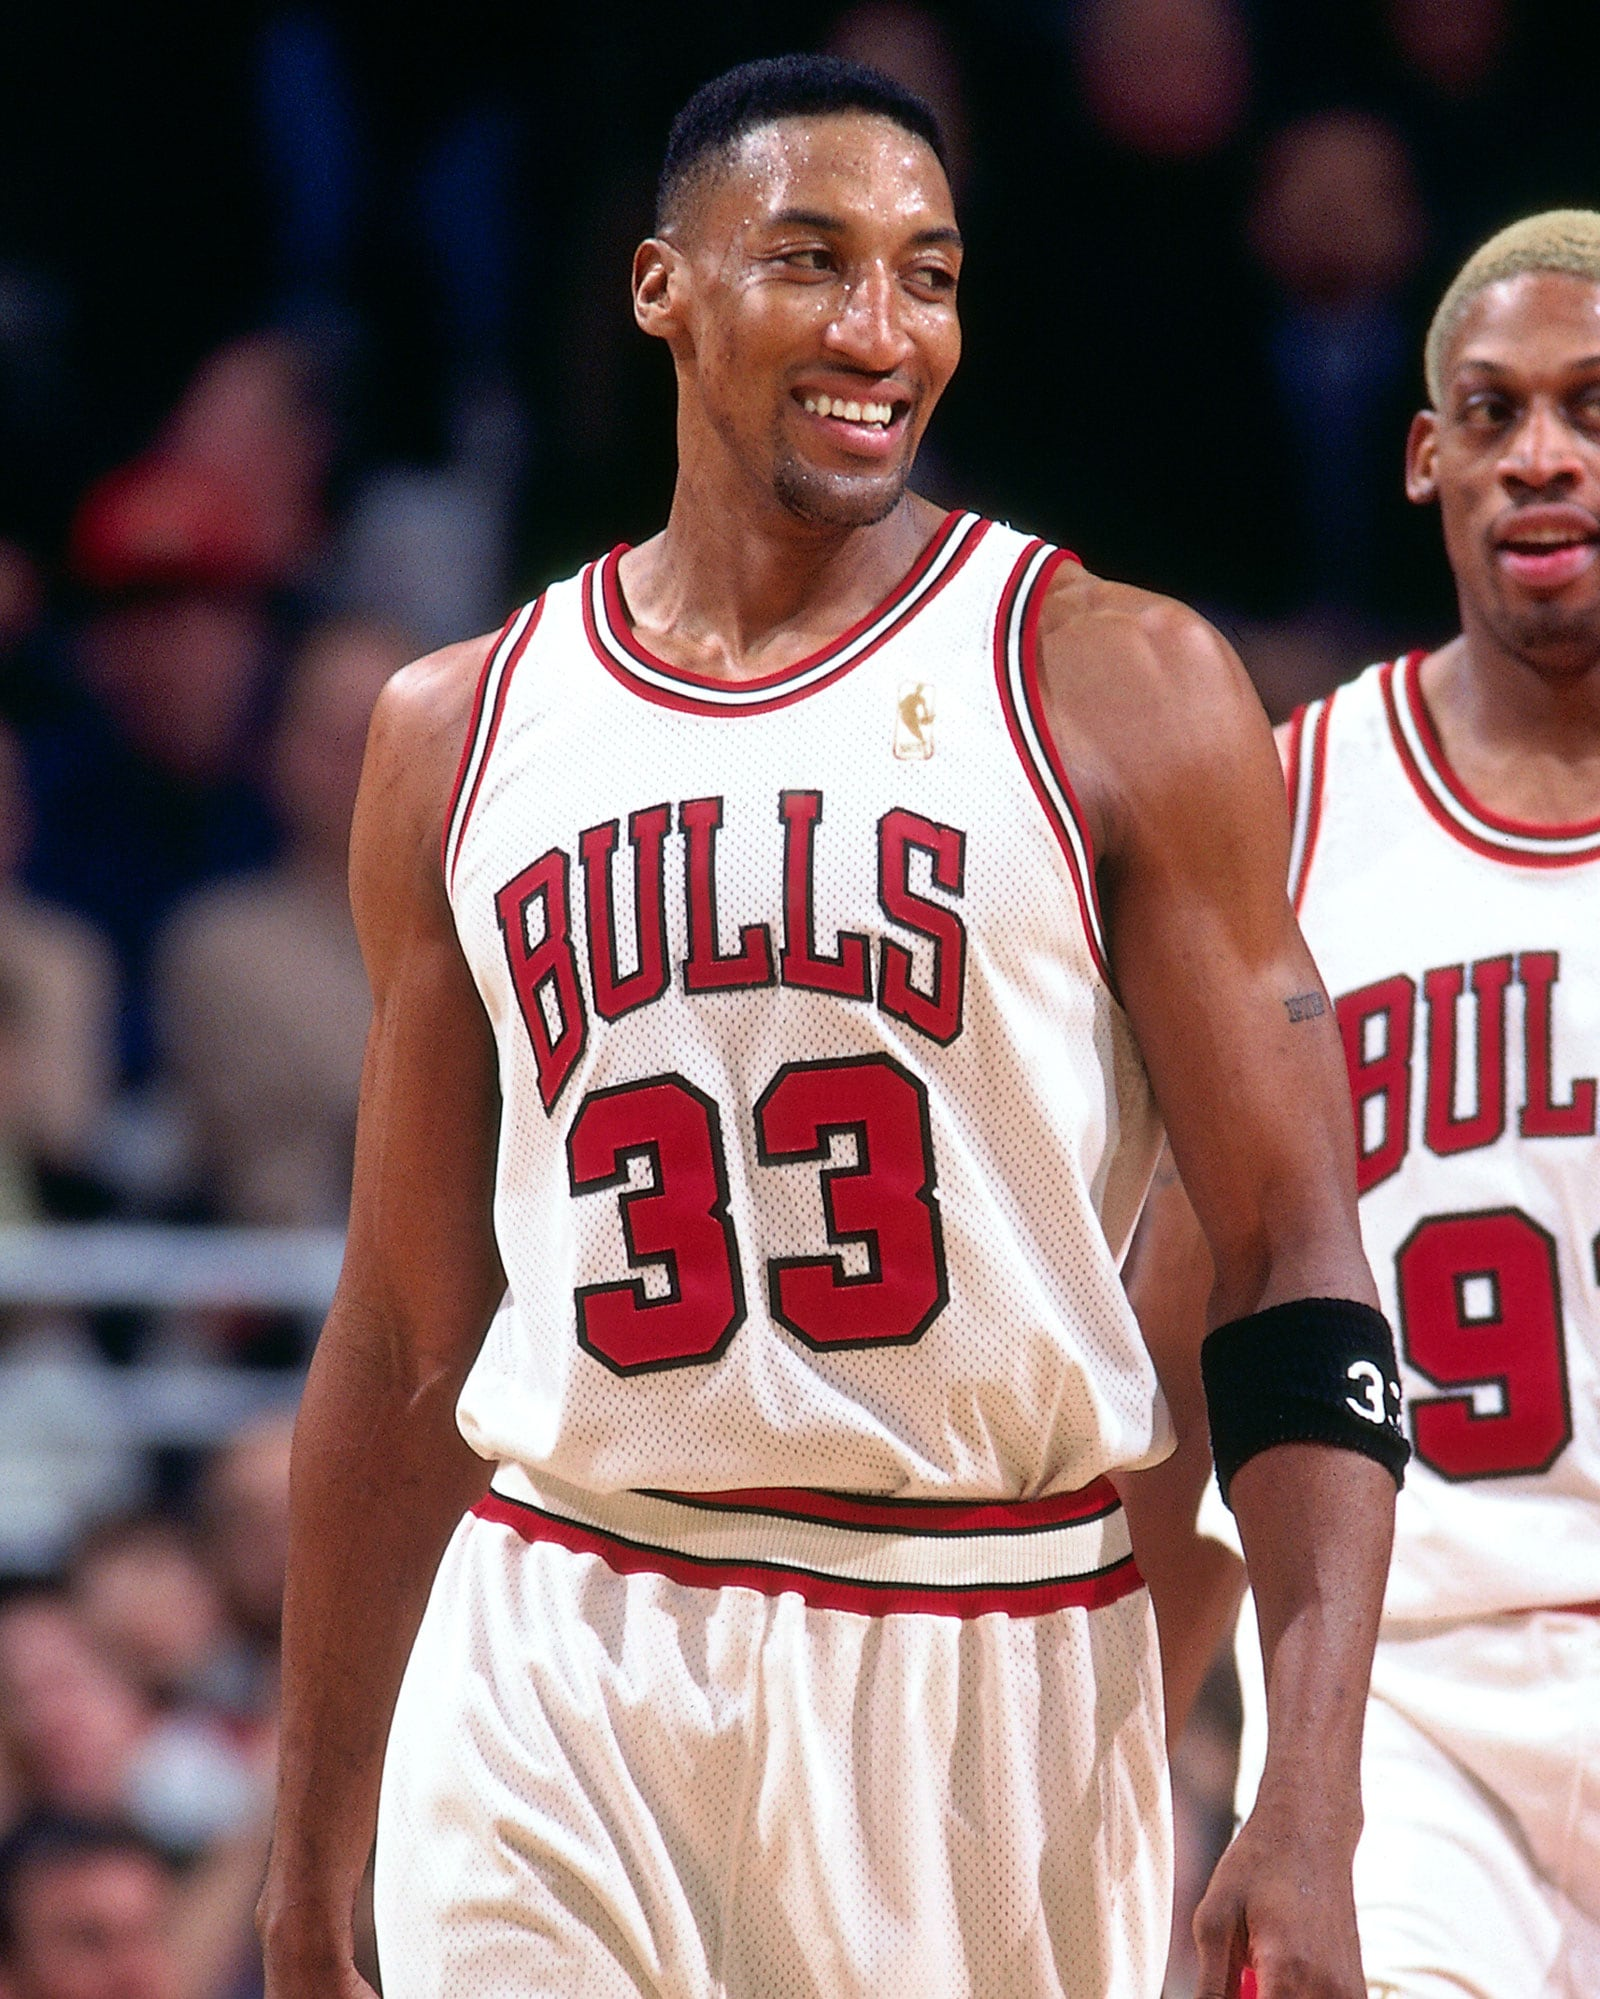 Scottie Pippen played for the Bulls from 1987 to 1998 before returning and playing for Chicago in the '03-'04 season.